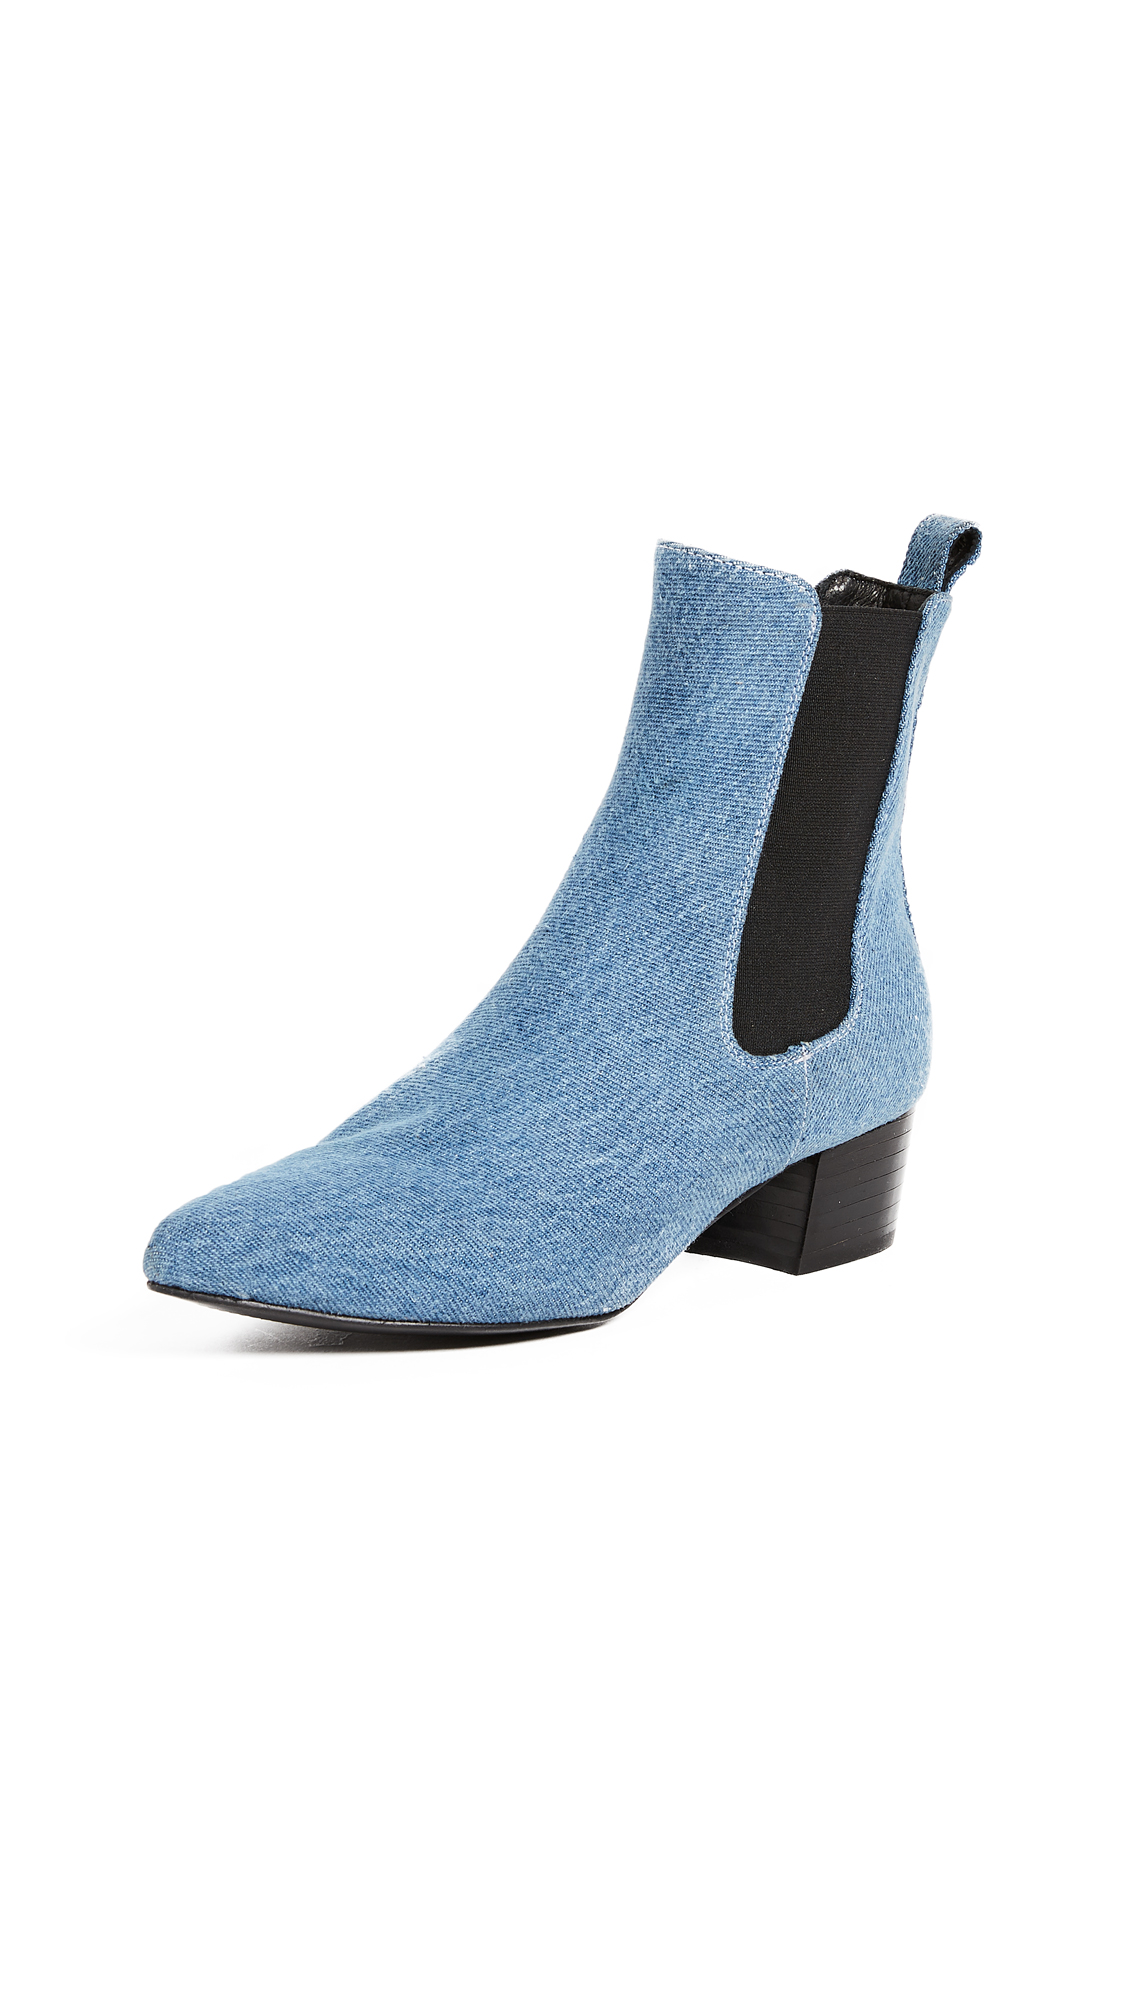 The Archive Mercer Heeled Chelsea Boots - Denim